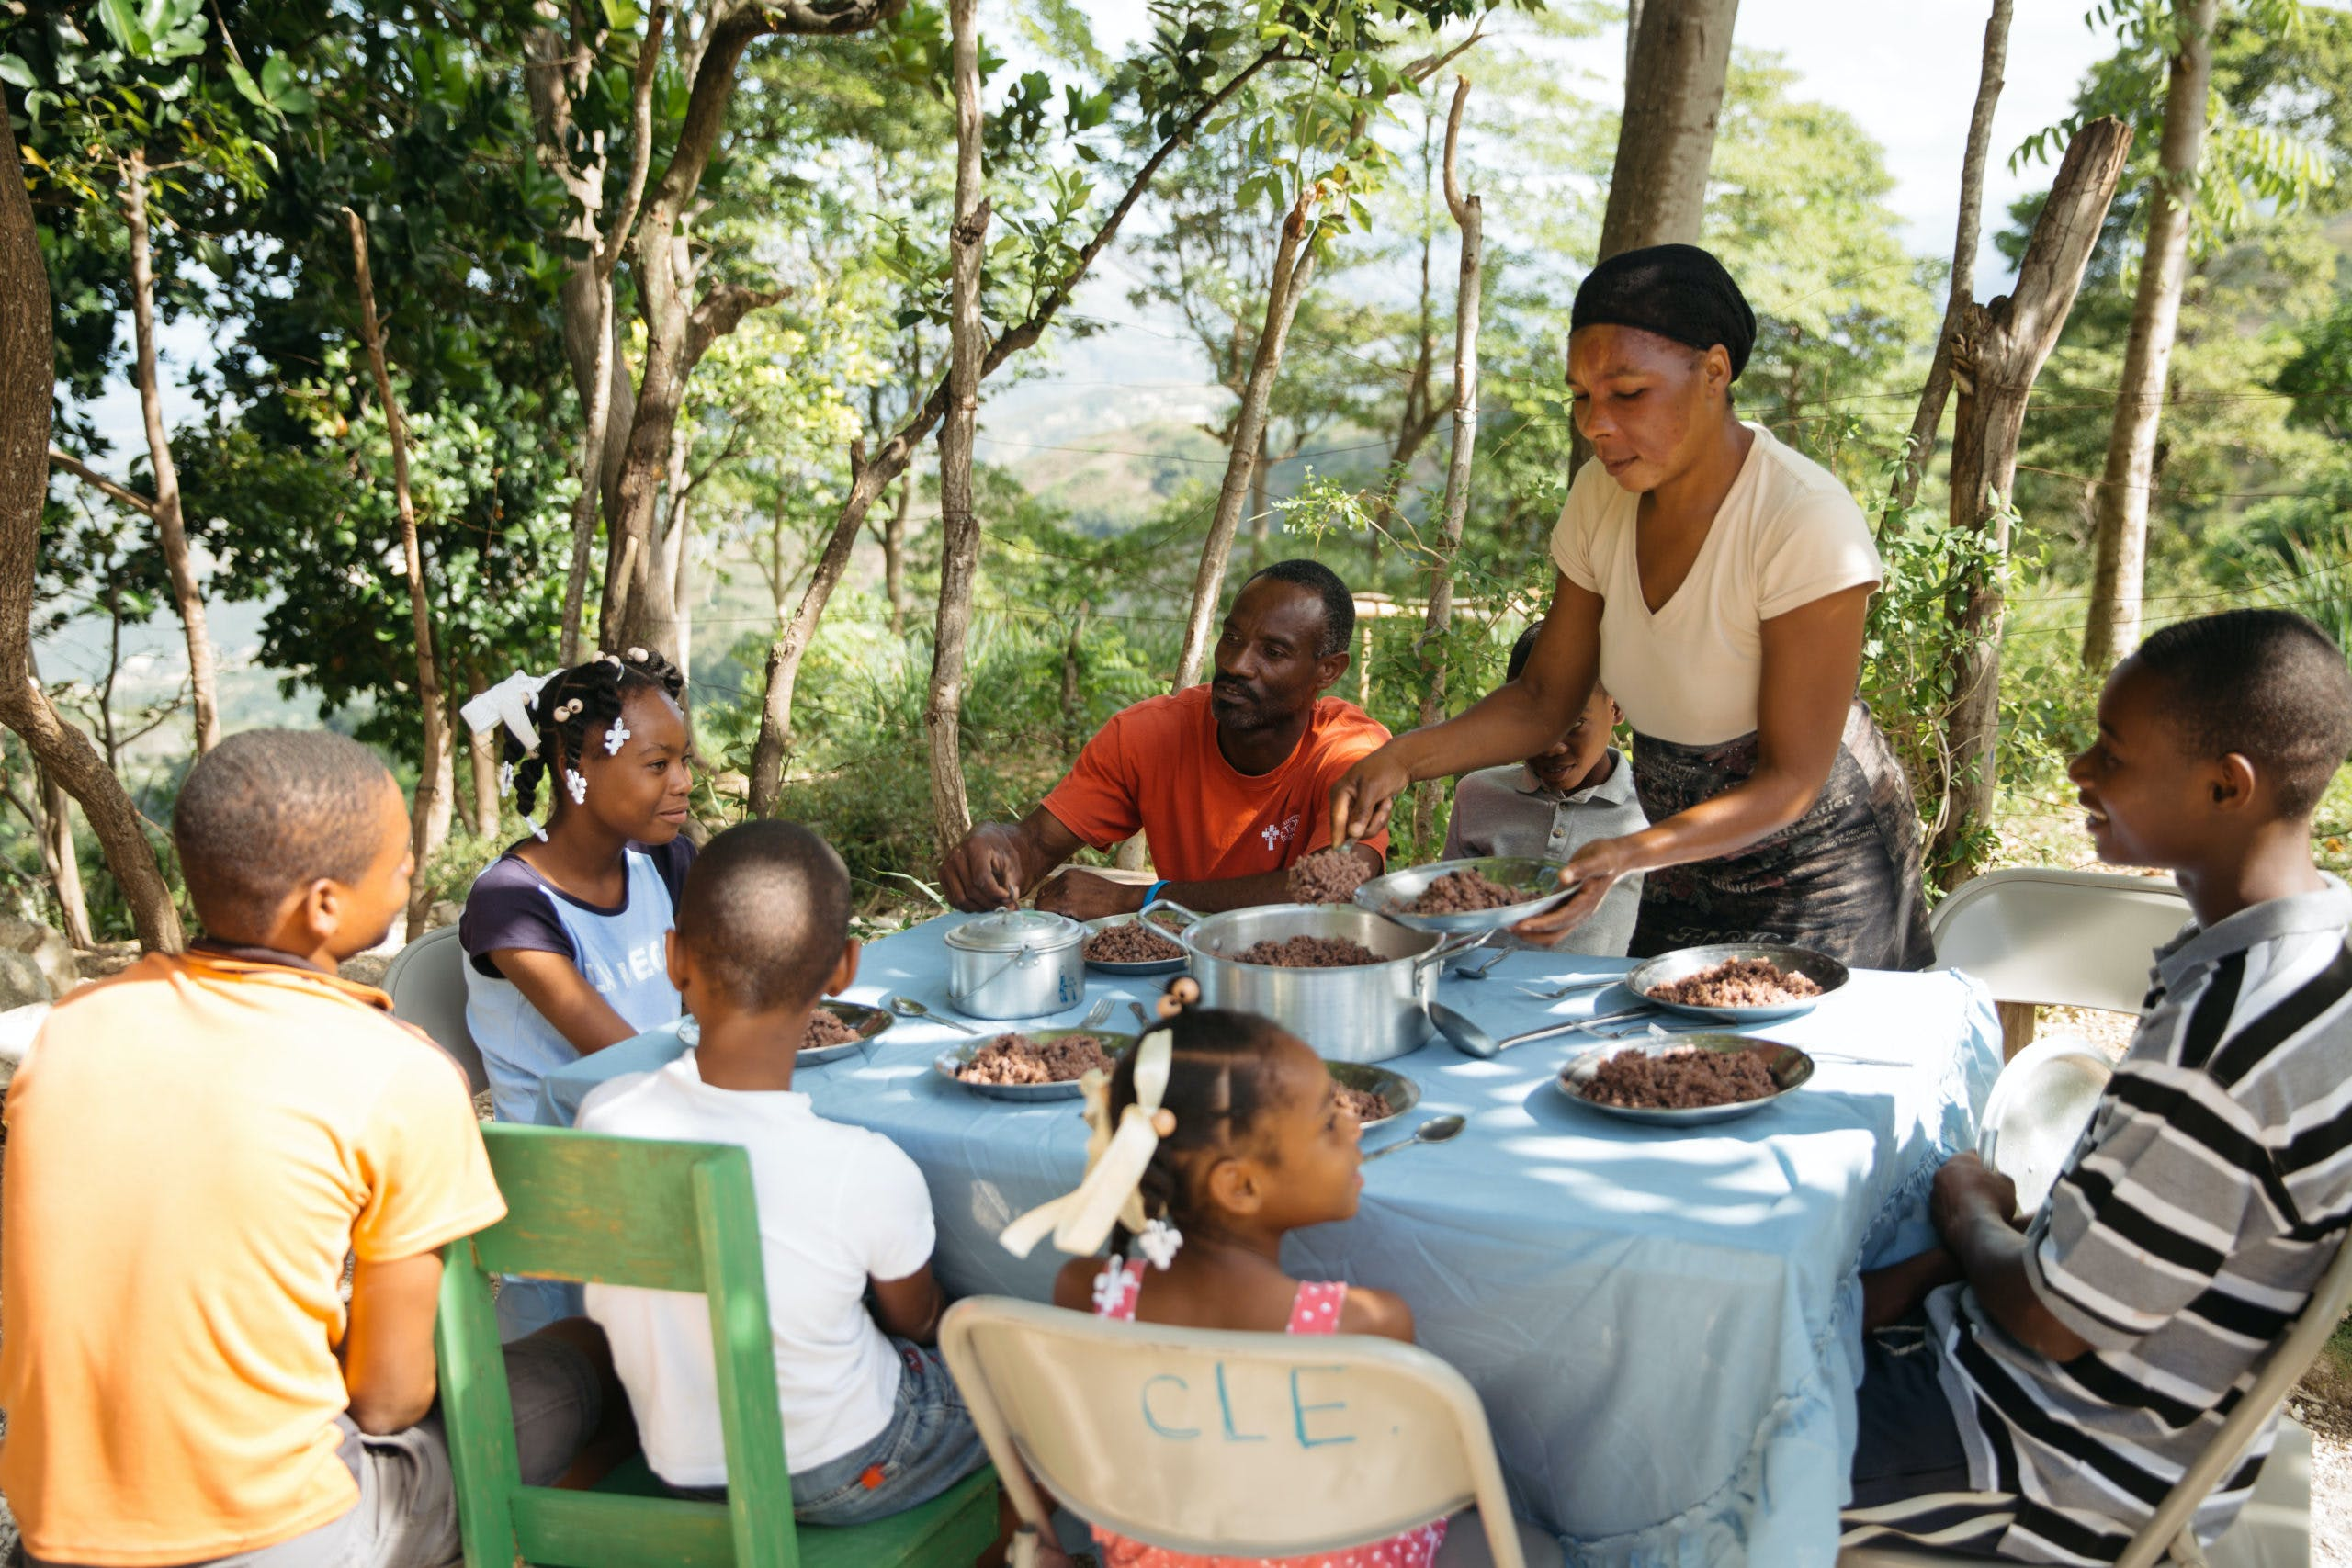 A mother serves beans to her family around a big table outside